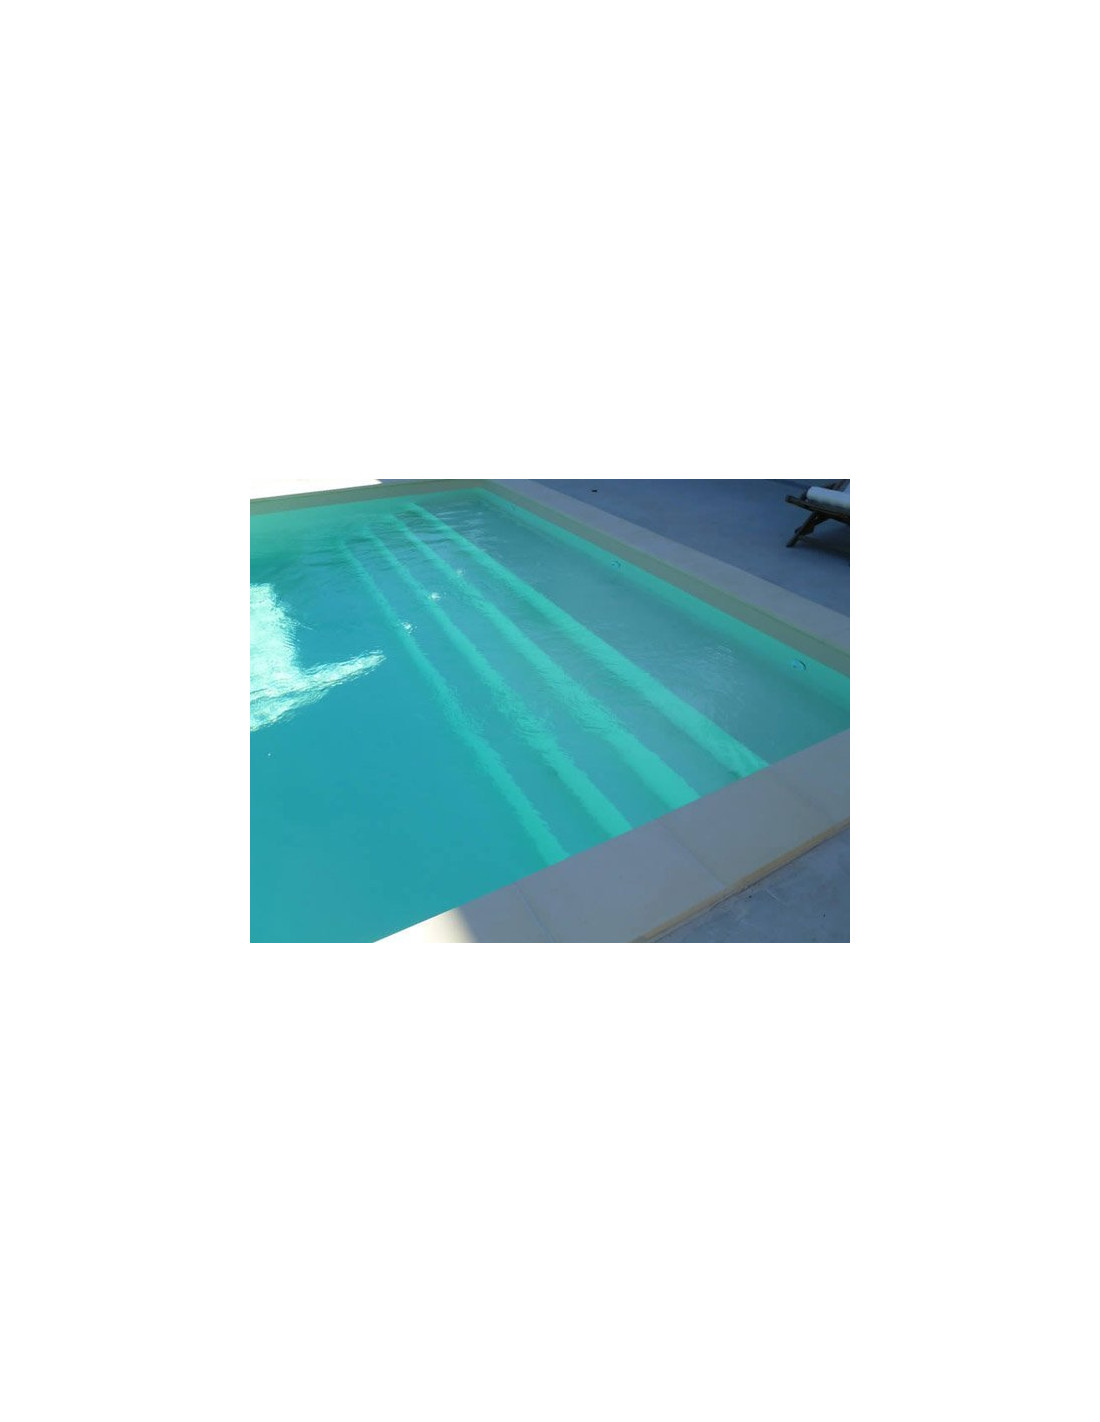 Kit piscine enterr e avec escalier modulo for Marche piscine